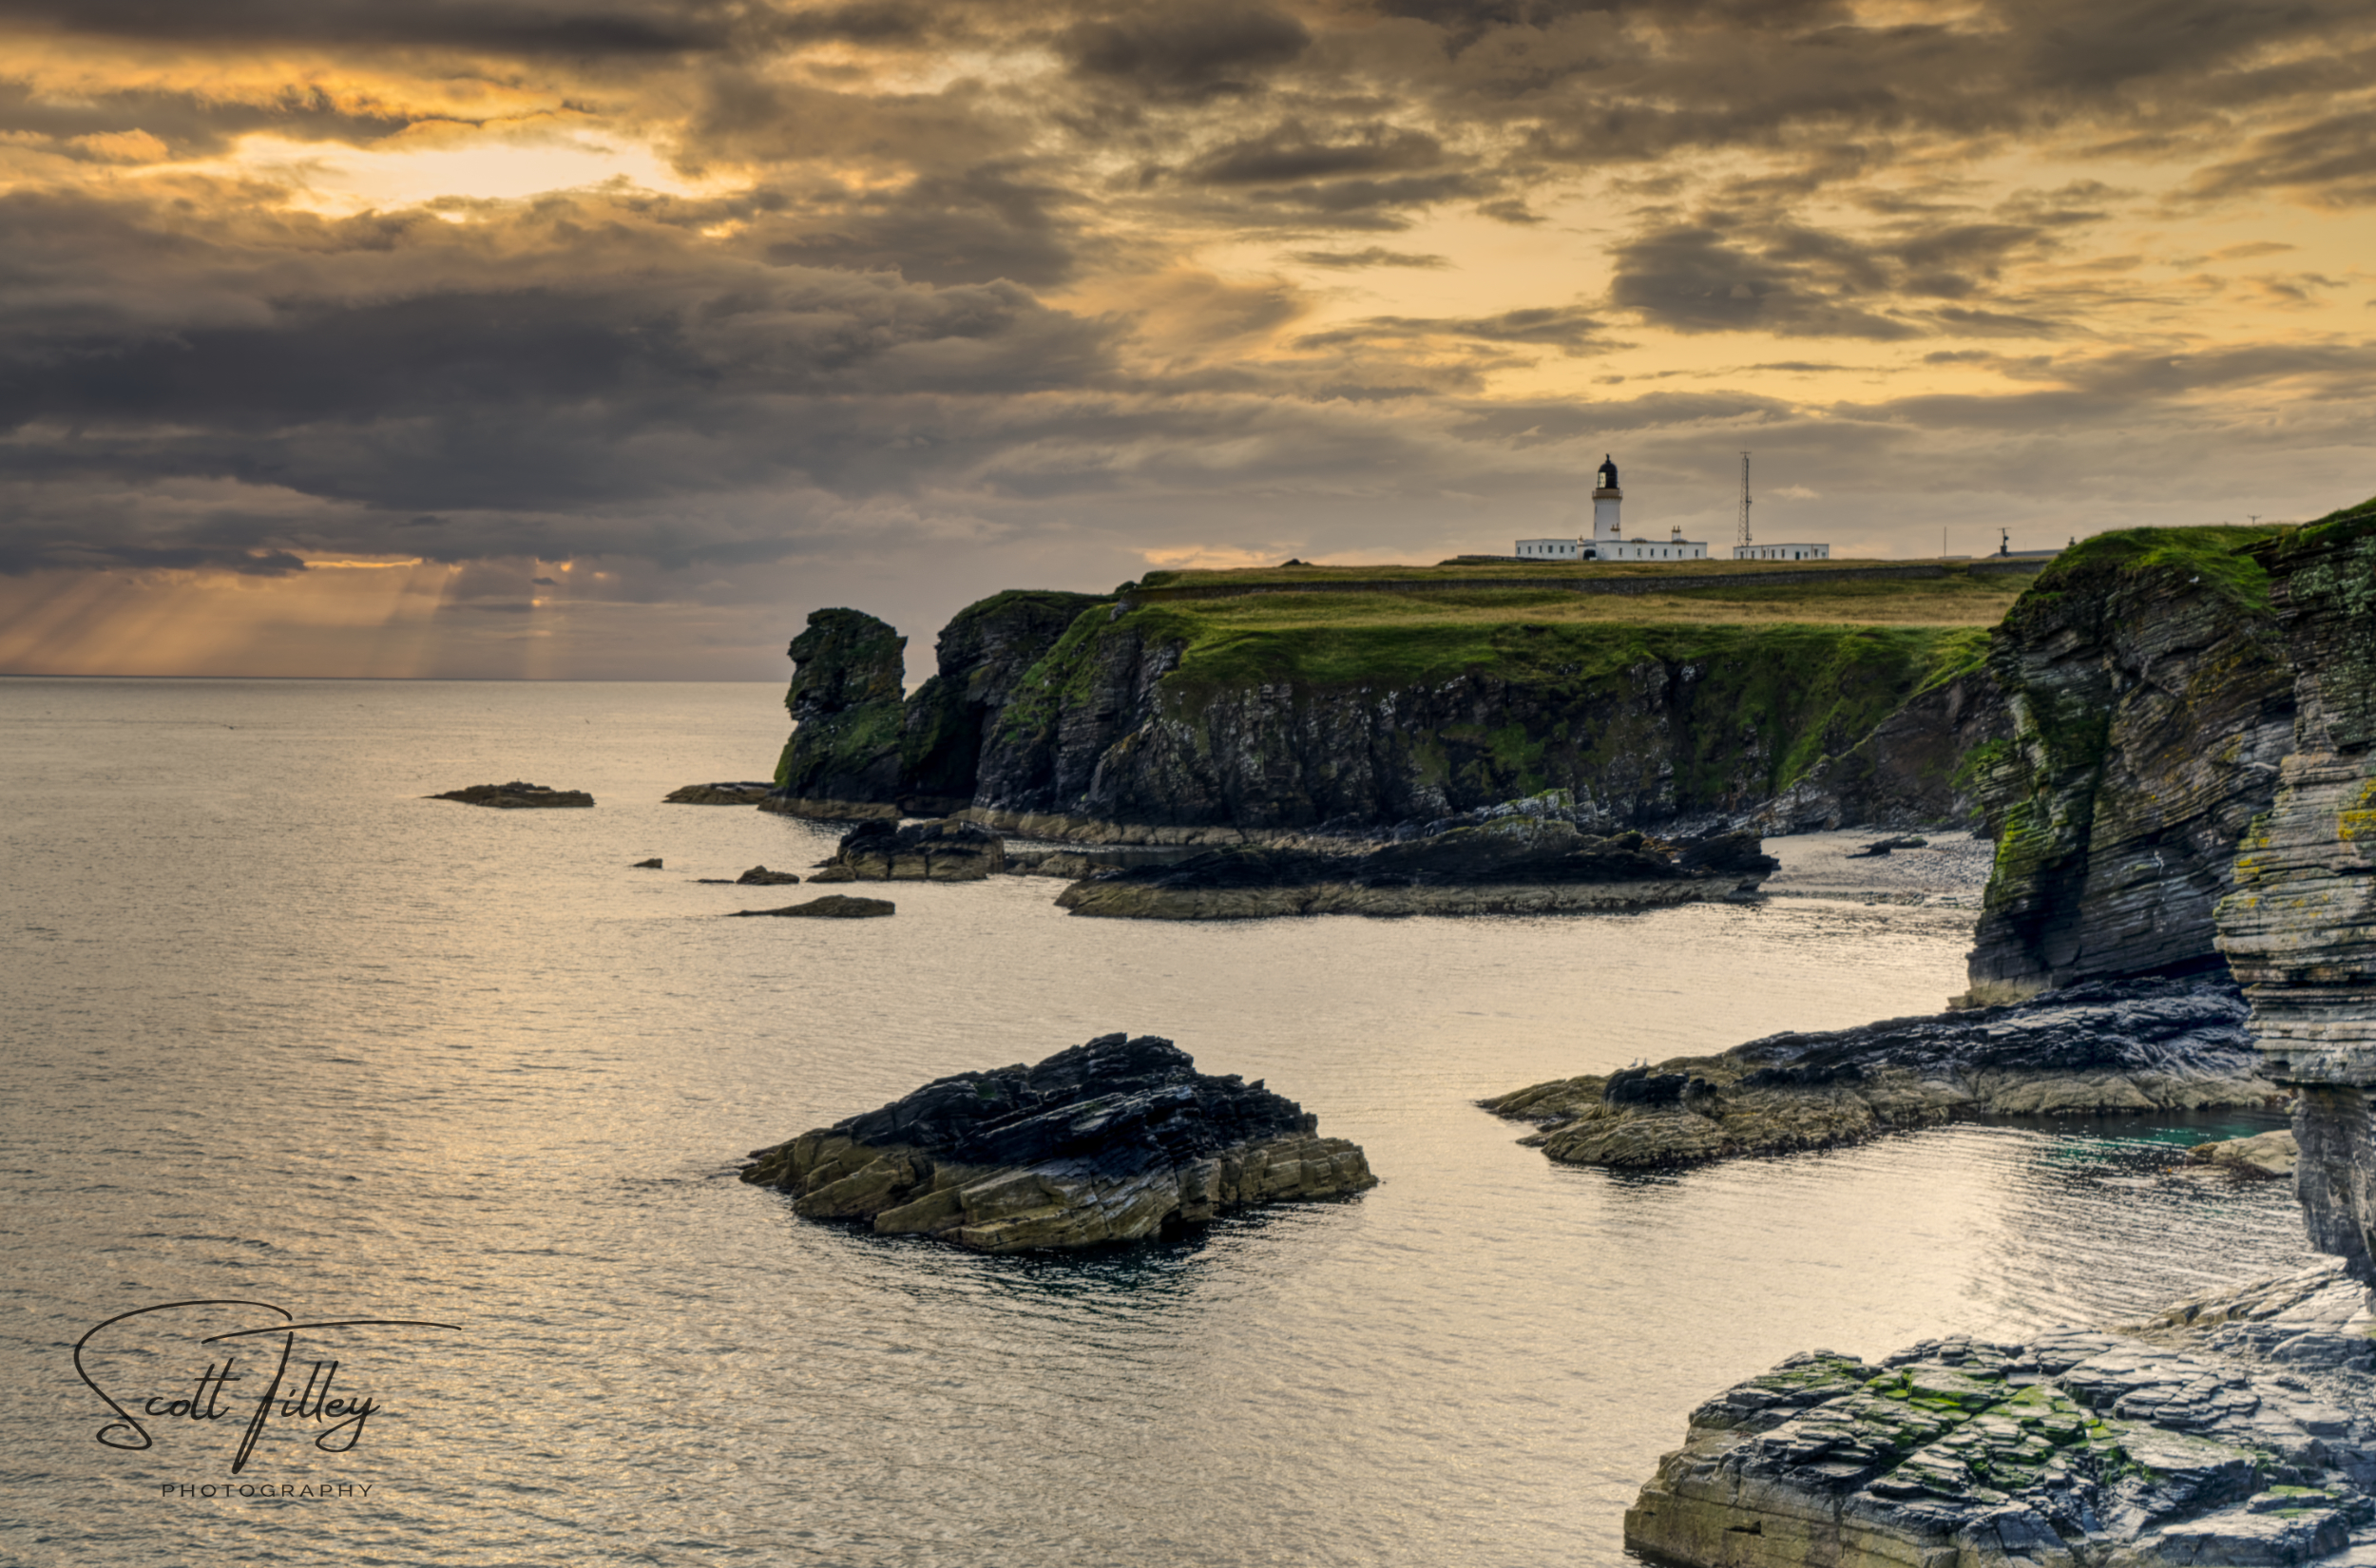 Noss Head Lighthouse. A HDR image taken on a whistle stop trip to drop my daughter off at an archaeological dig.